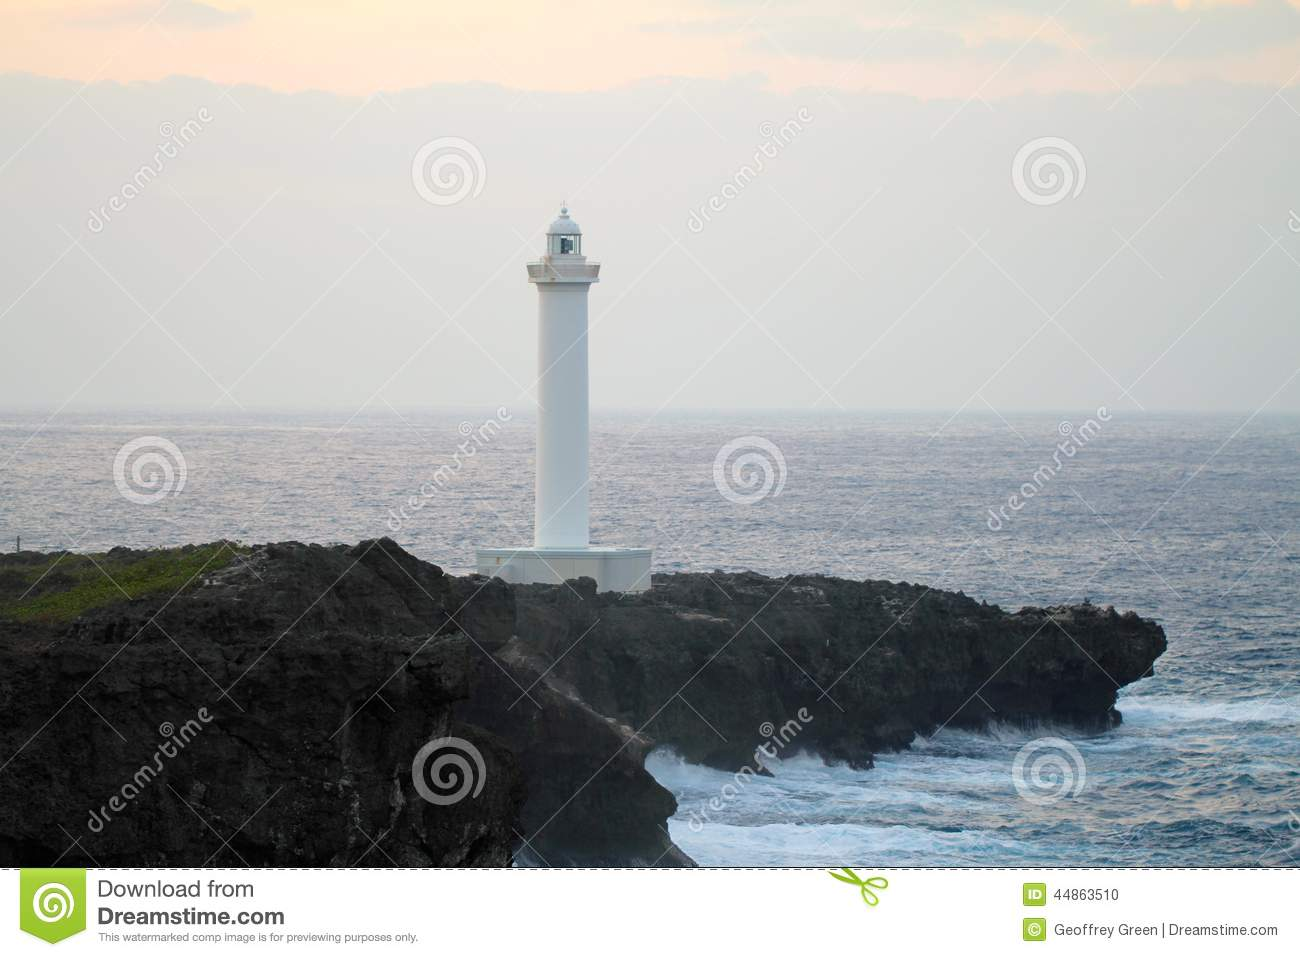 Lighthouse Cape Zampa, Yomitan Village, Okinawa Japan at Sunset